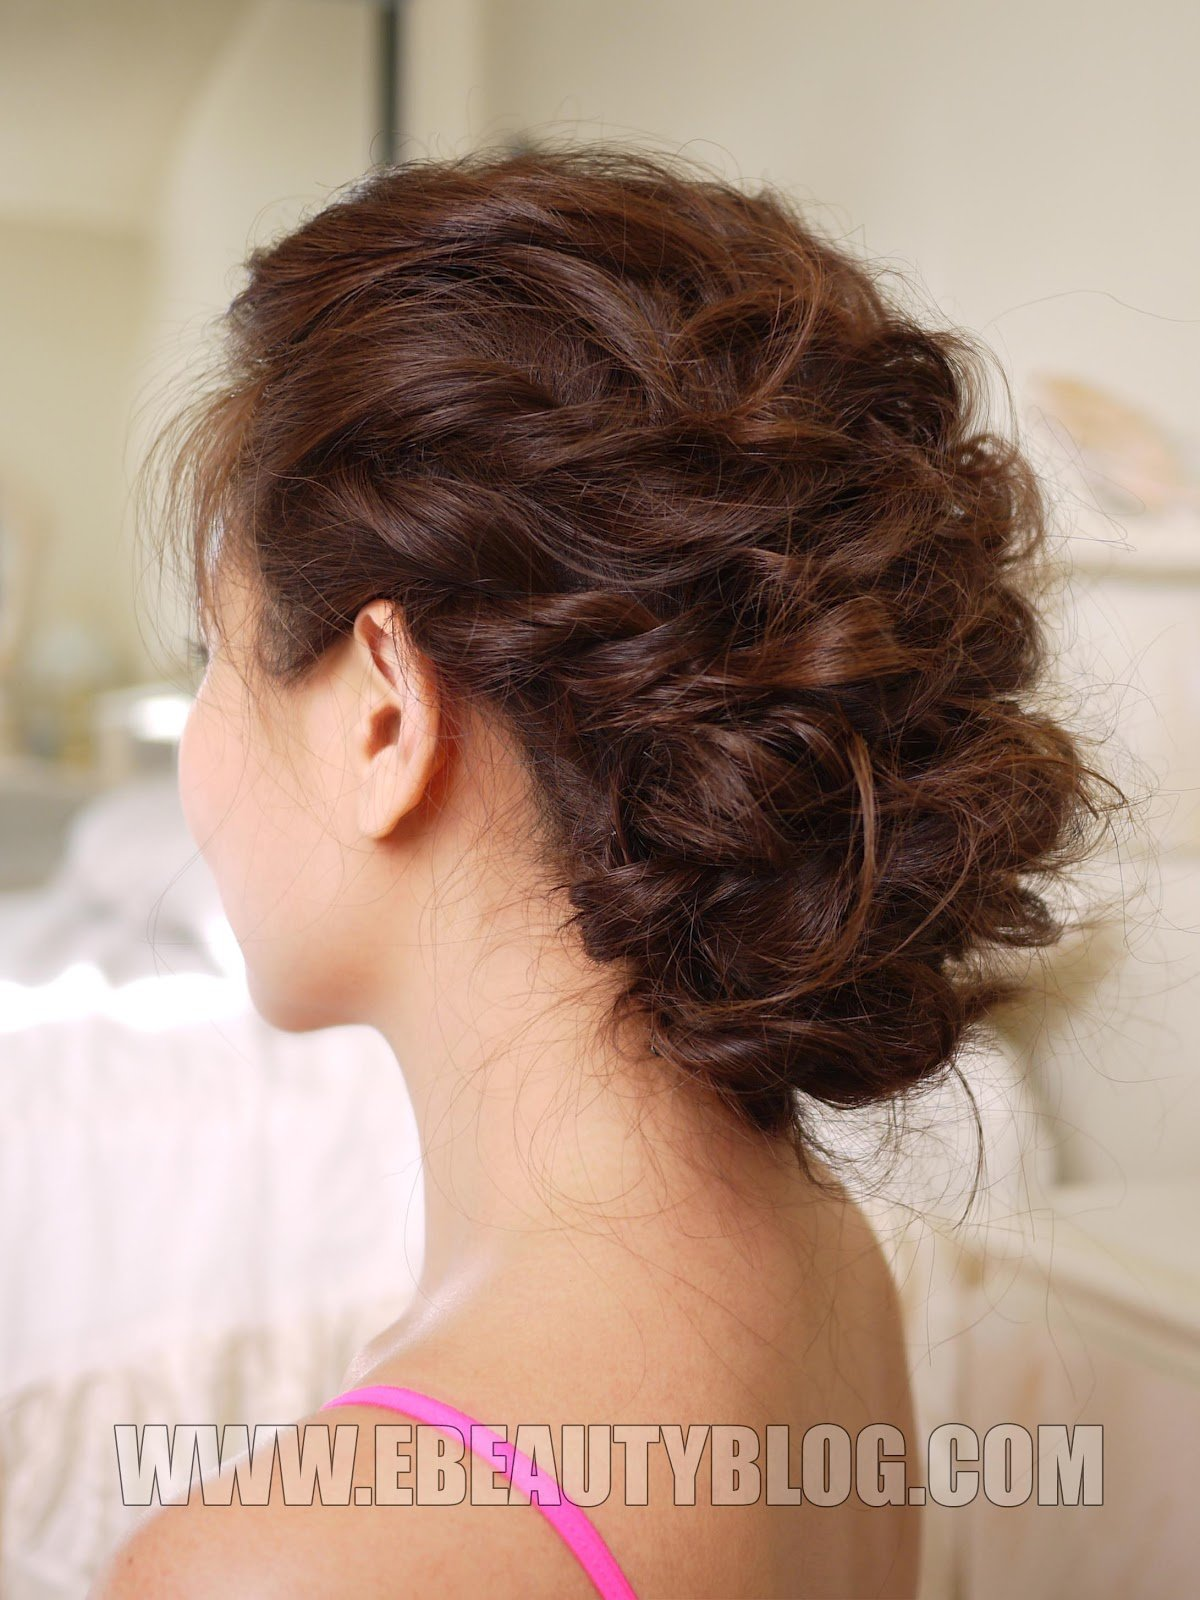 The Best Ebeautyblog Com Easy Messy Updo Hair Tutorial Pictures